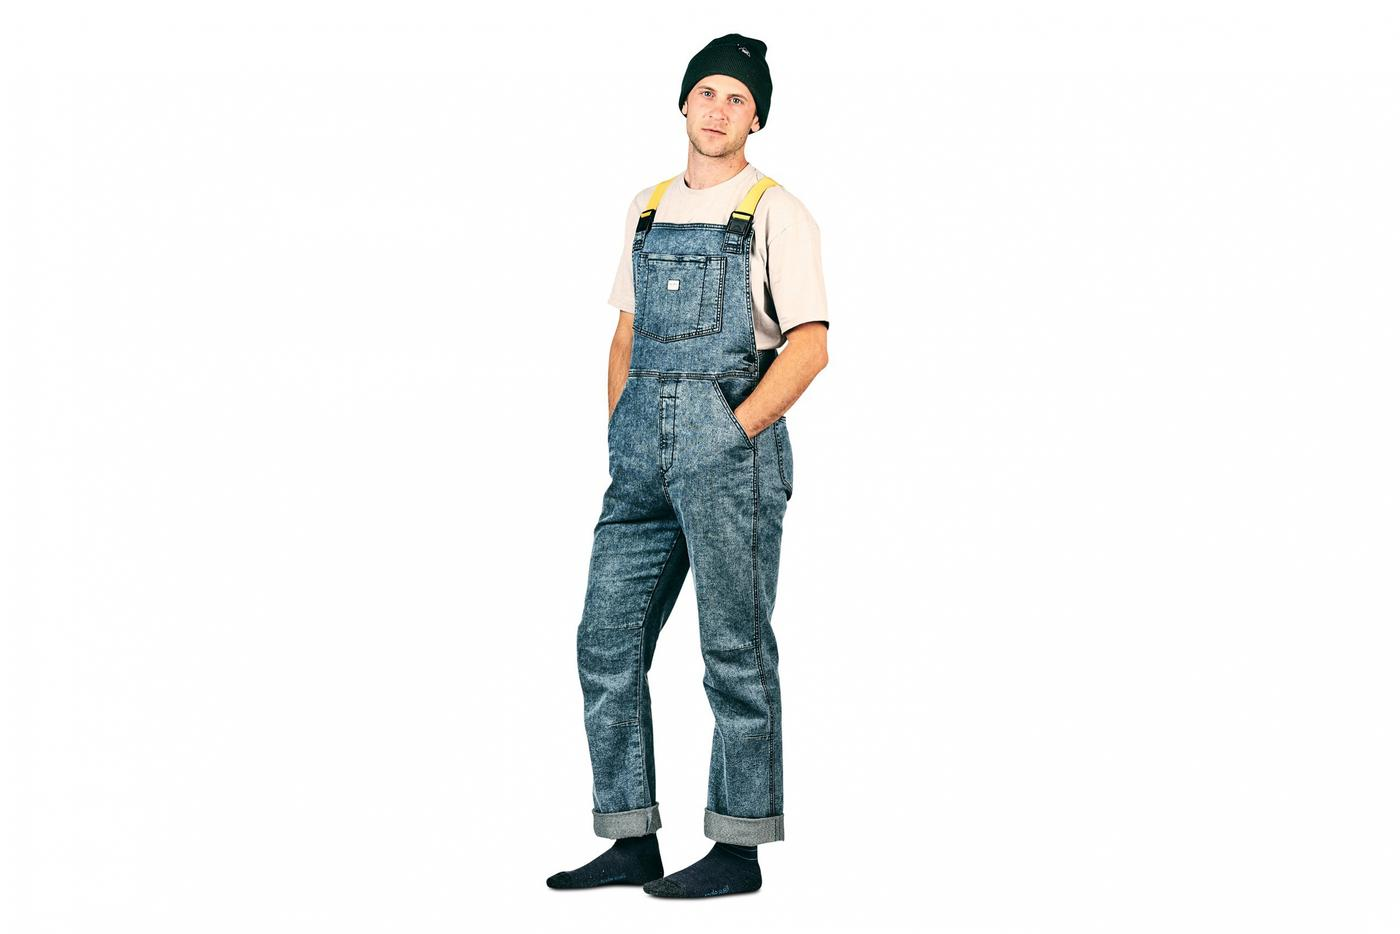 Ripton and Co's New Drift Overalls